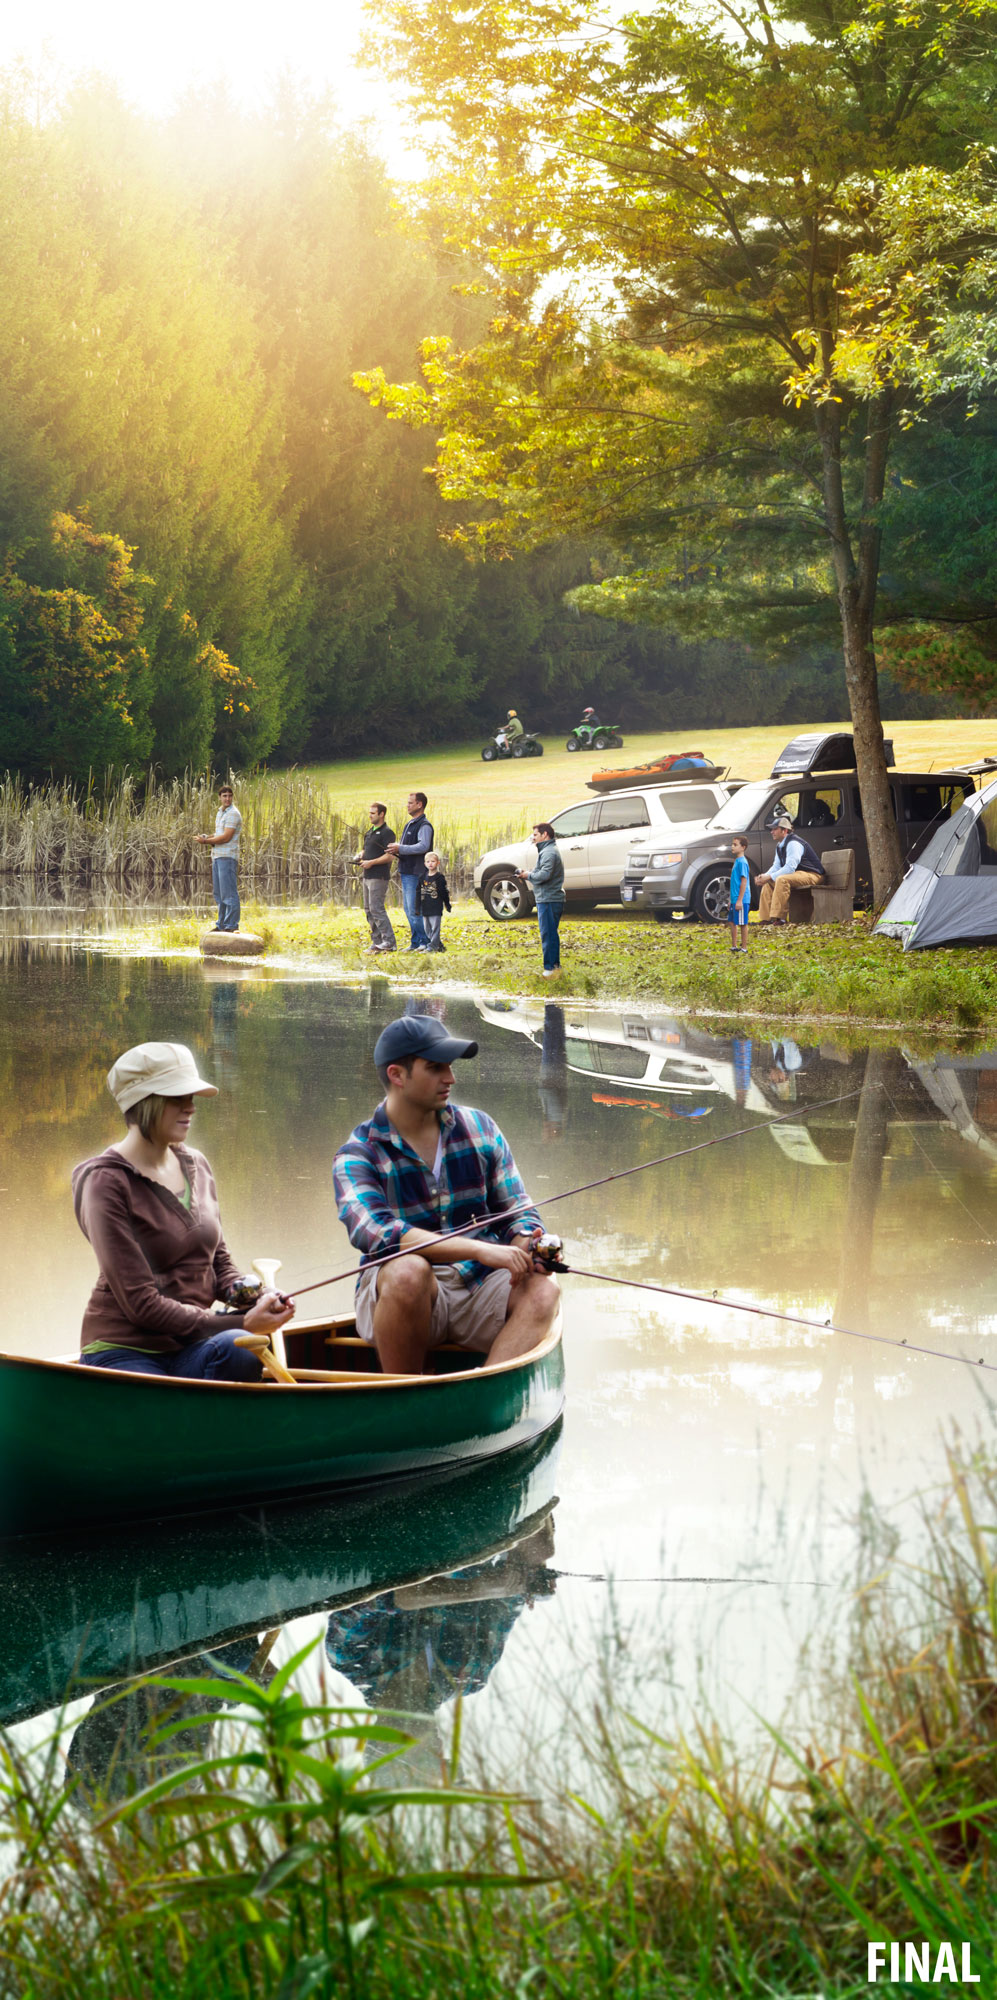 composite image of kids and adults fishing in pond